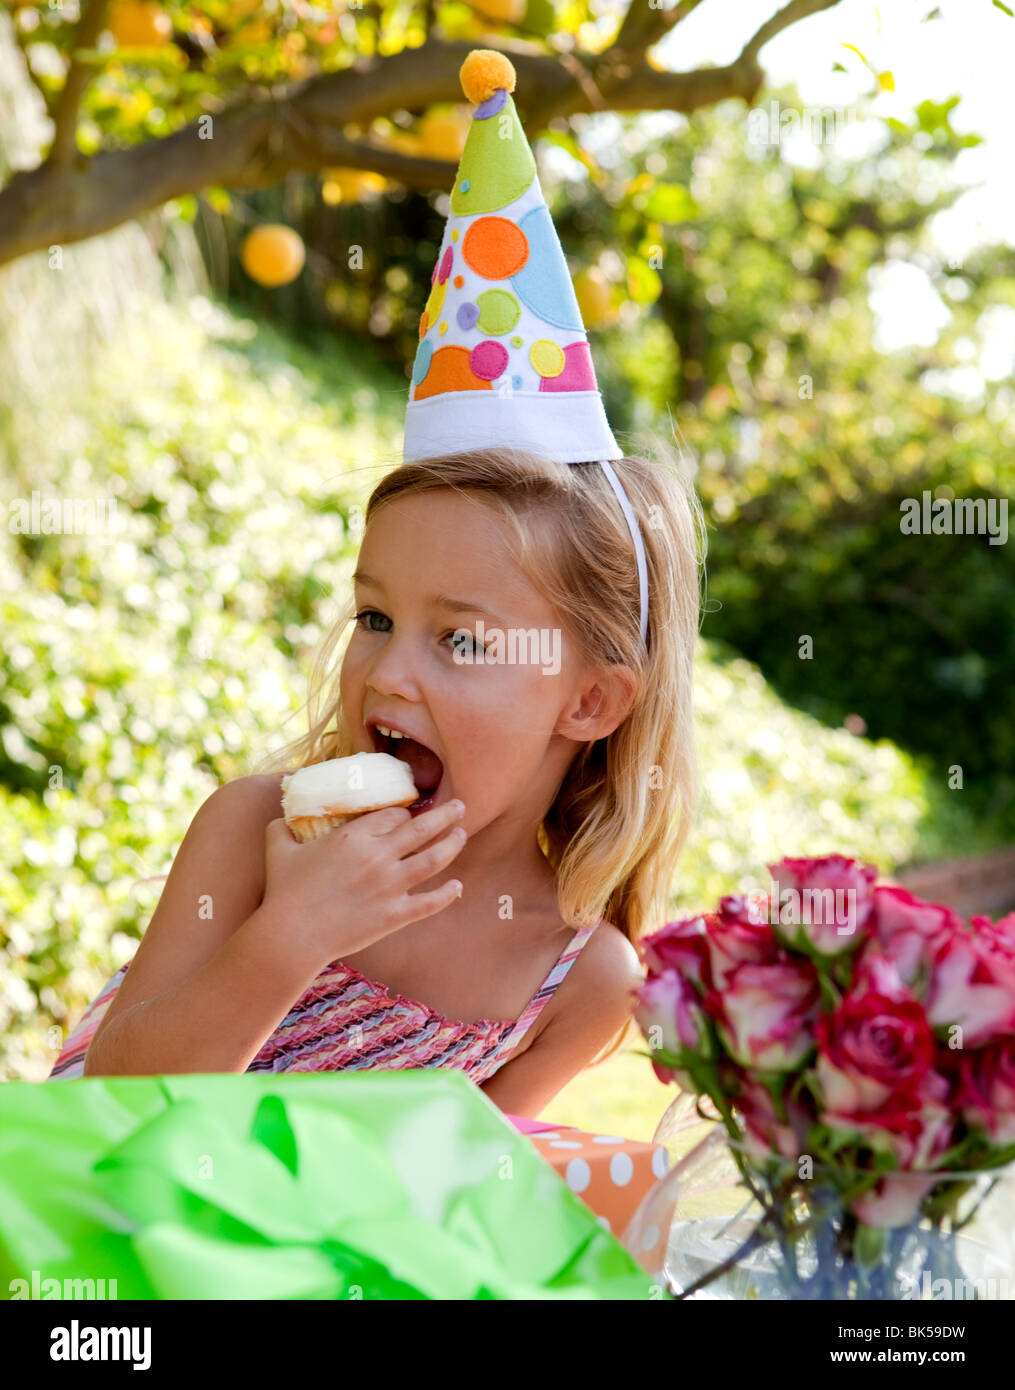 Young girl with party hat eating cupcake - Stock Image